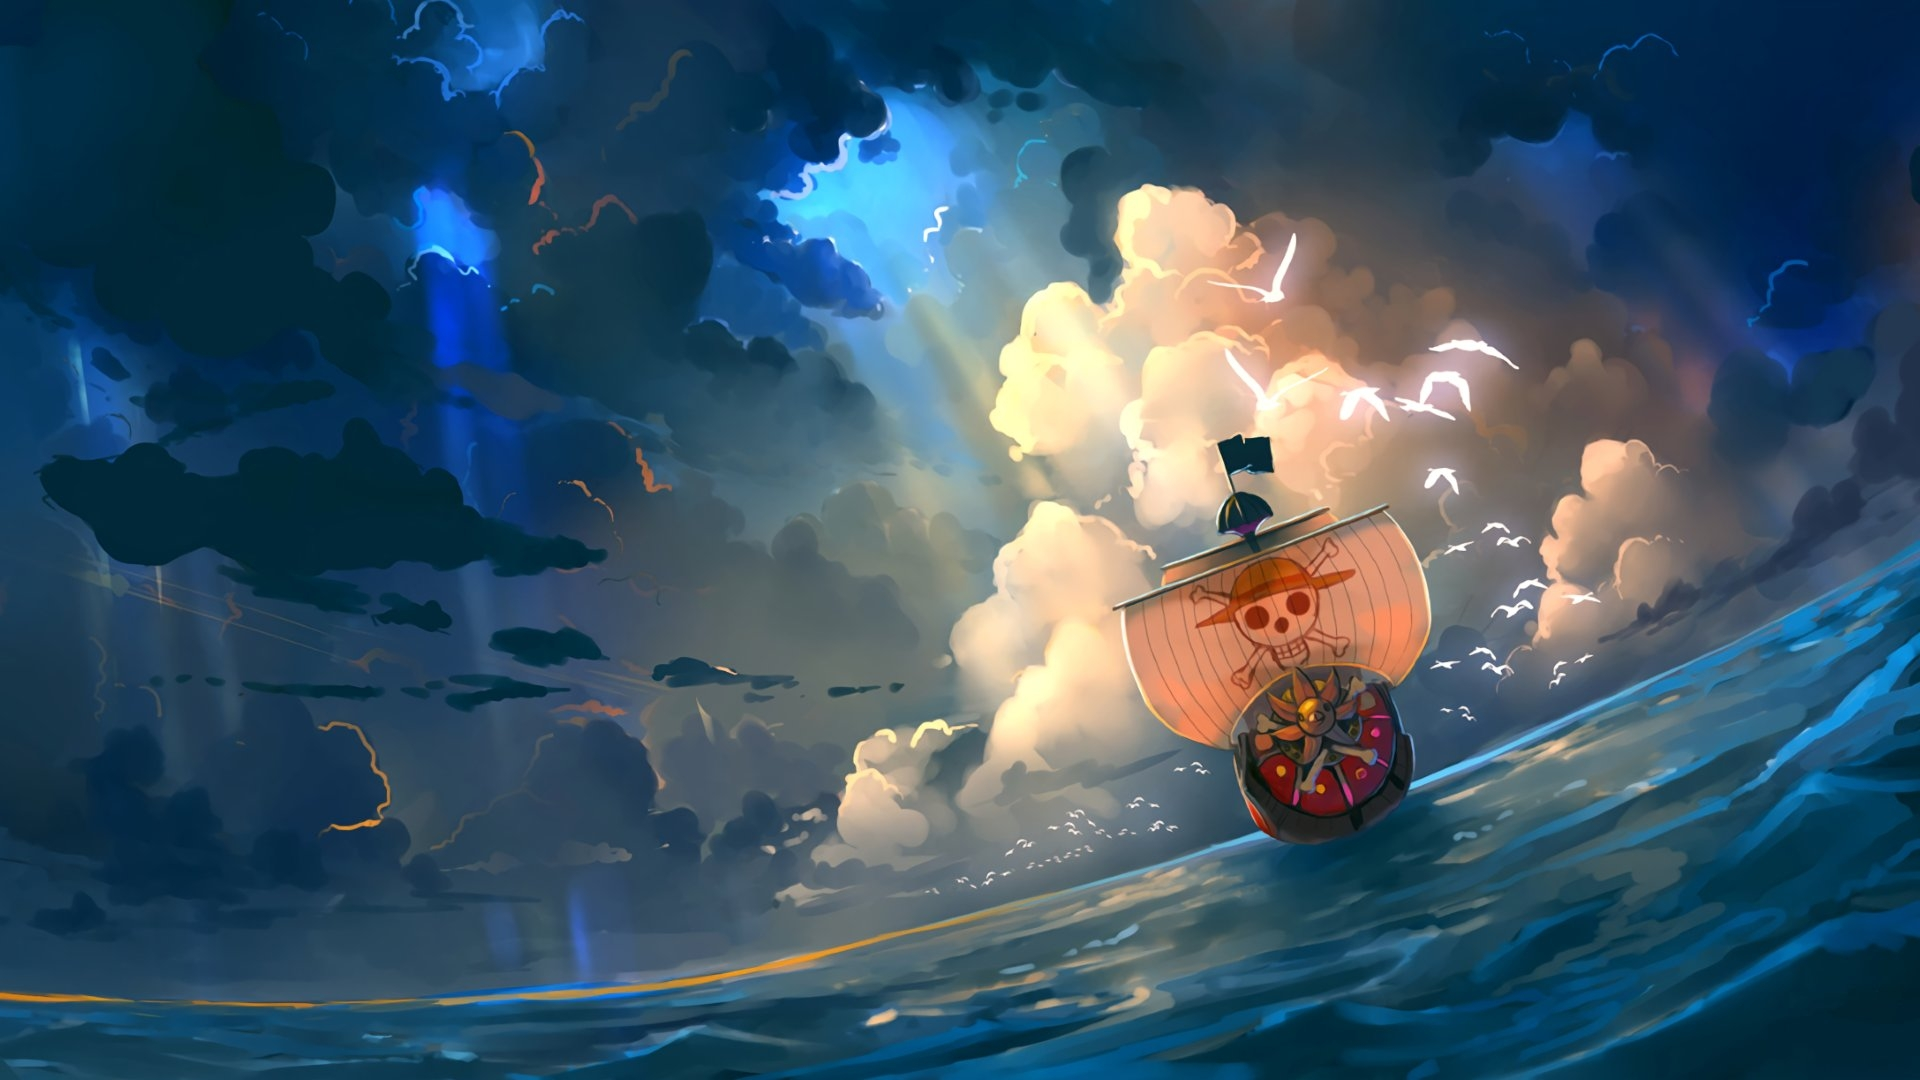 640x960 One Piece Anime Artwork Iphone 4 Iphone 4s Hd 4k Wallpapers Images Backgrounds Photos And Pictures